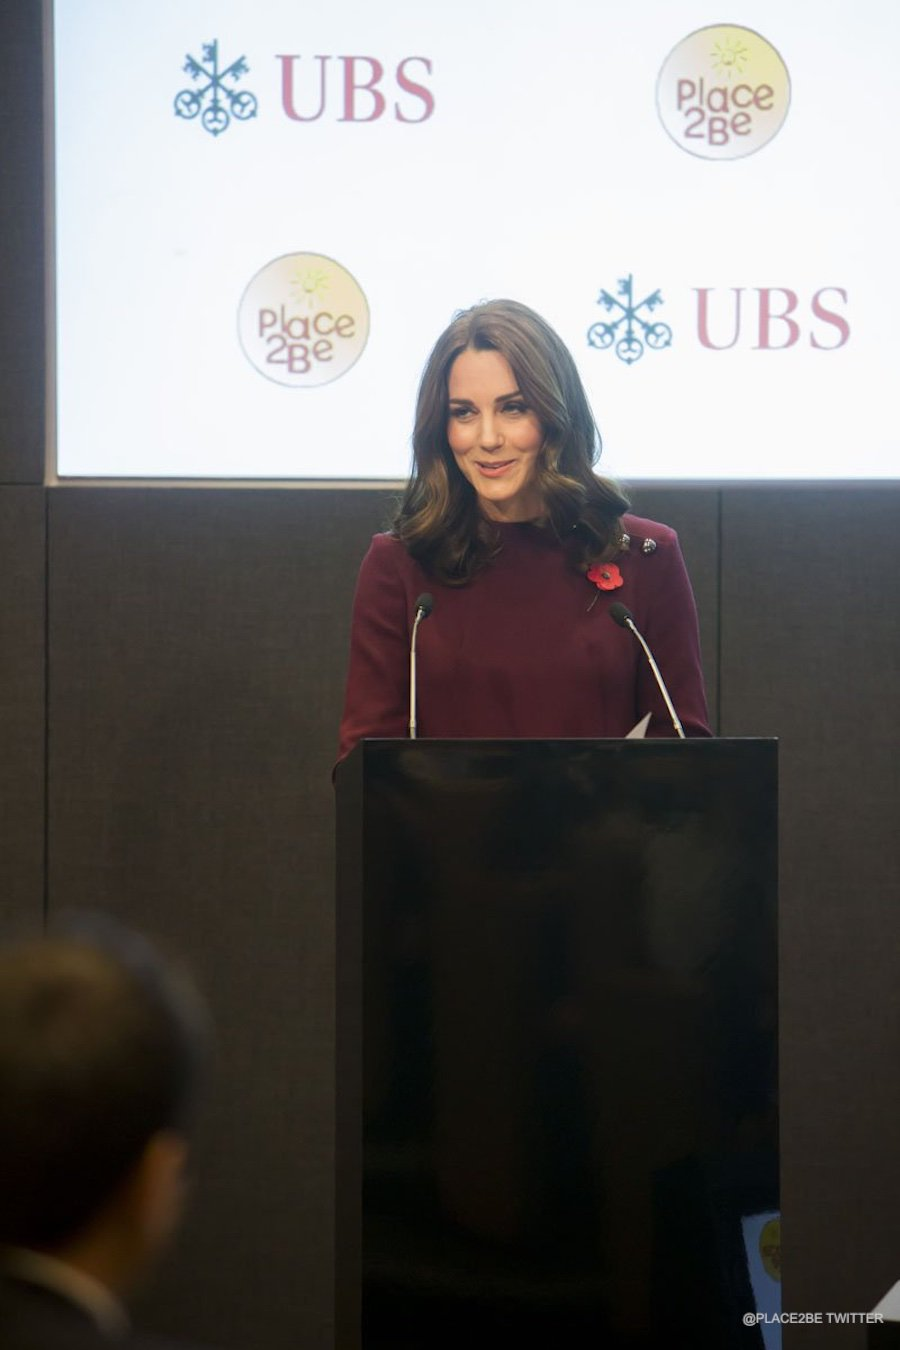 Kate Middleton giving an address at the forum